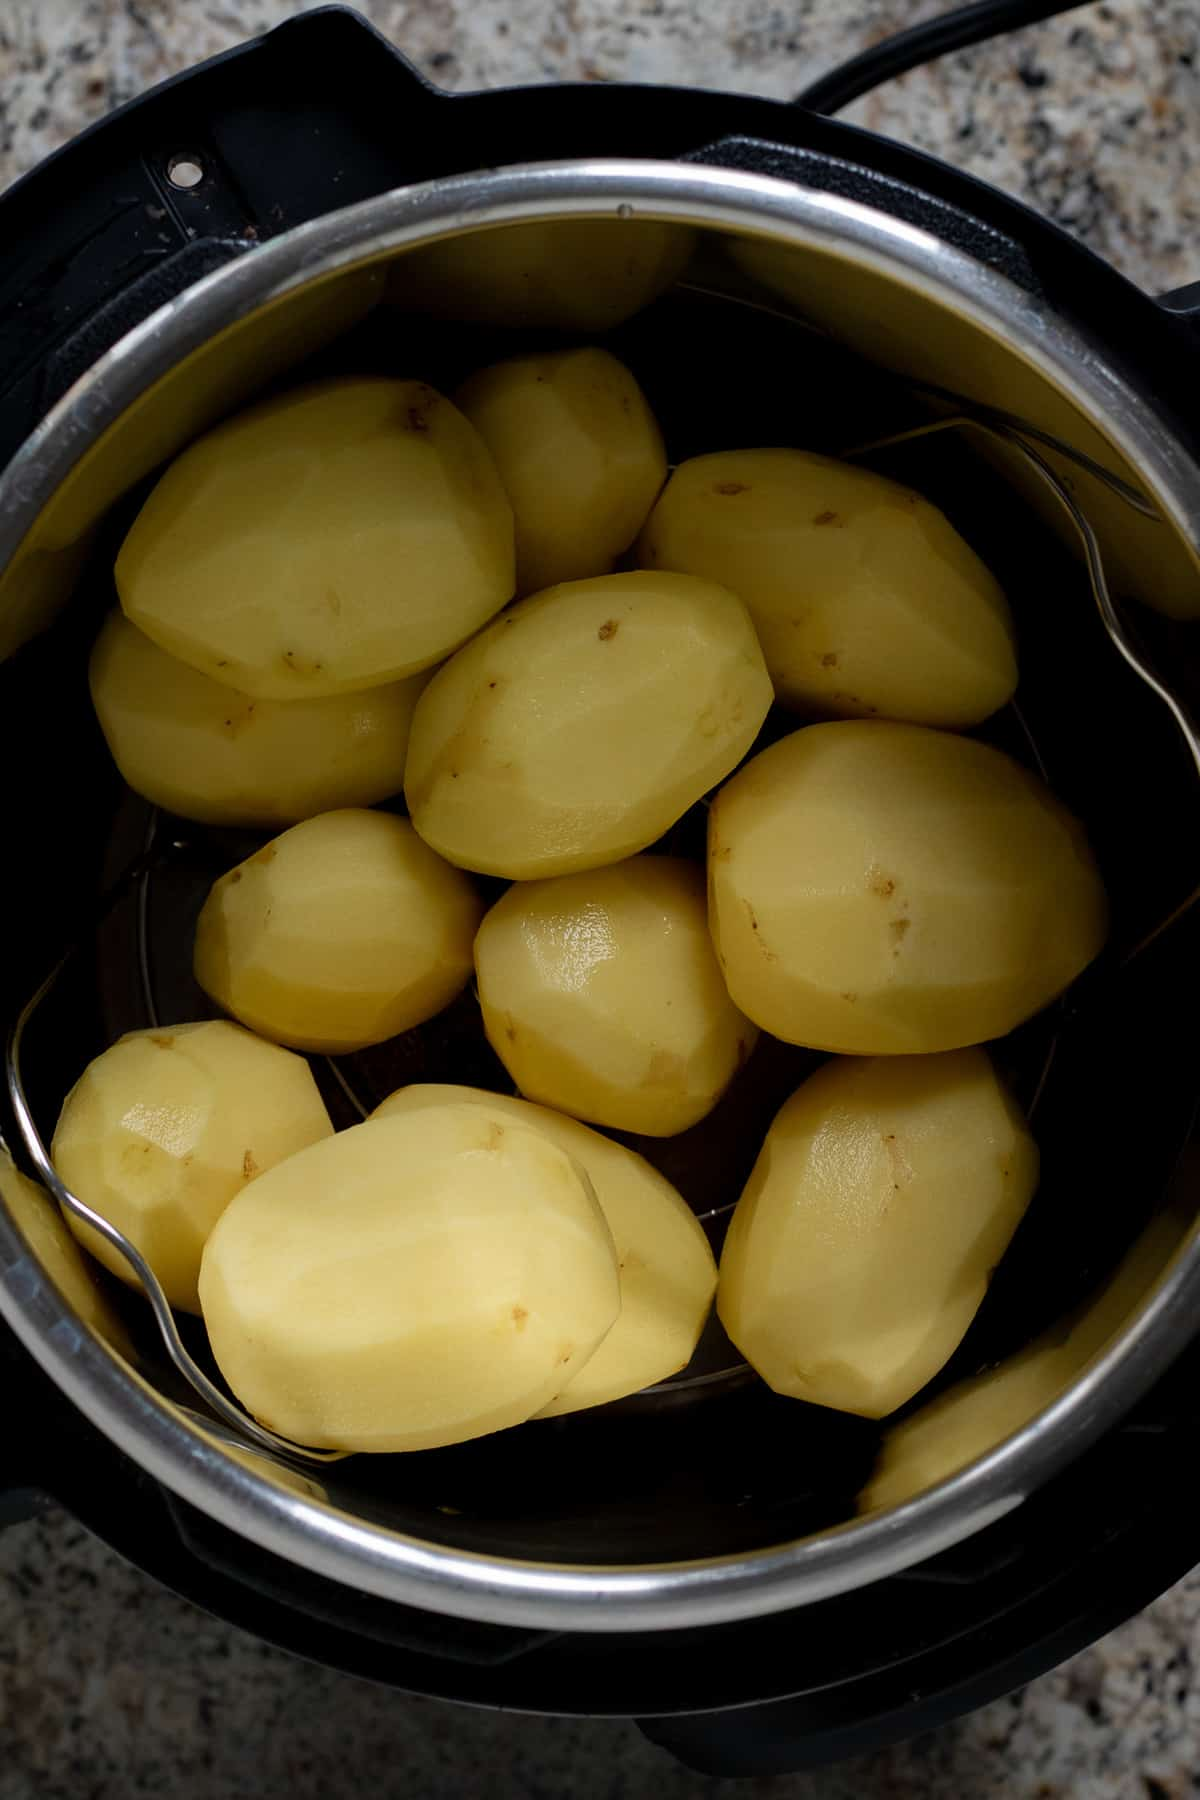 Gold potatoes in Instant Pot before cooking.